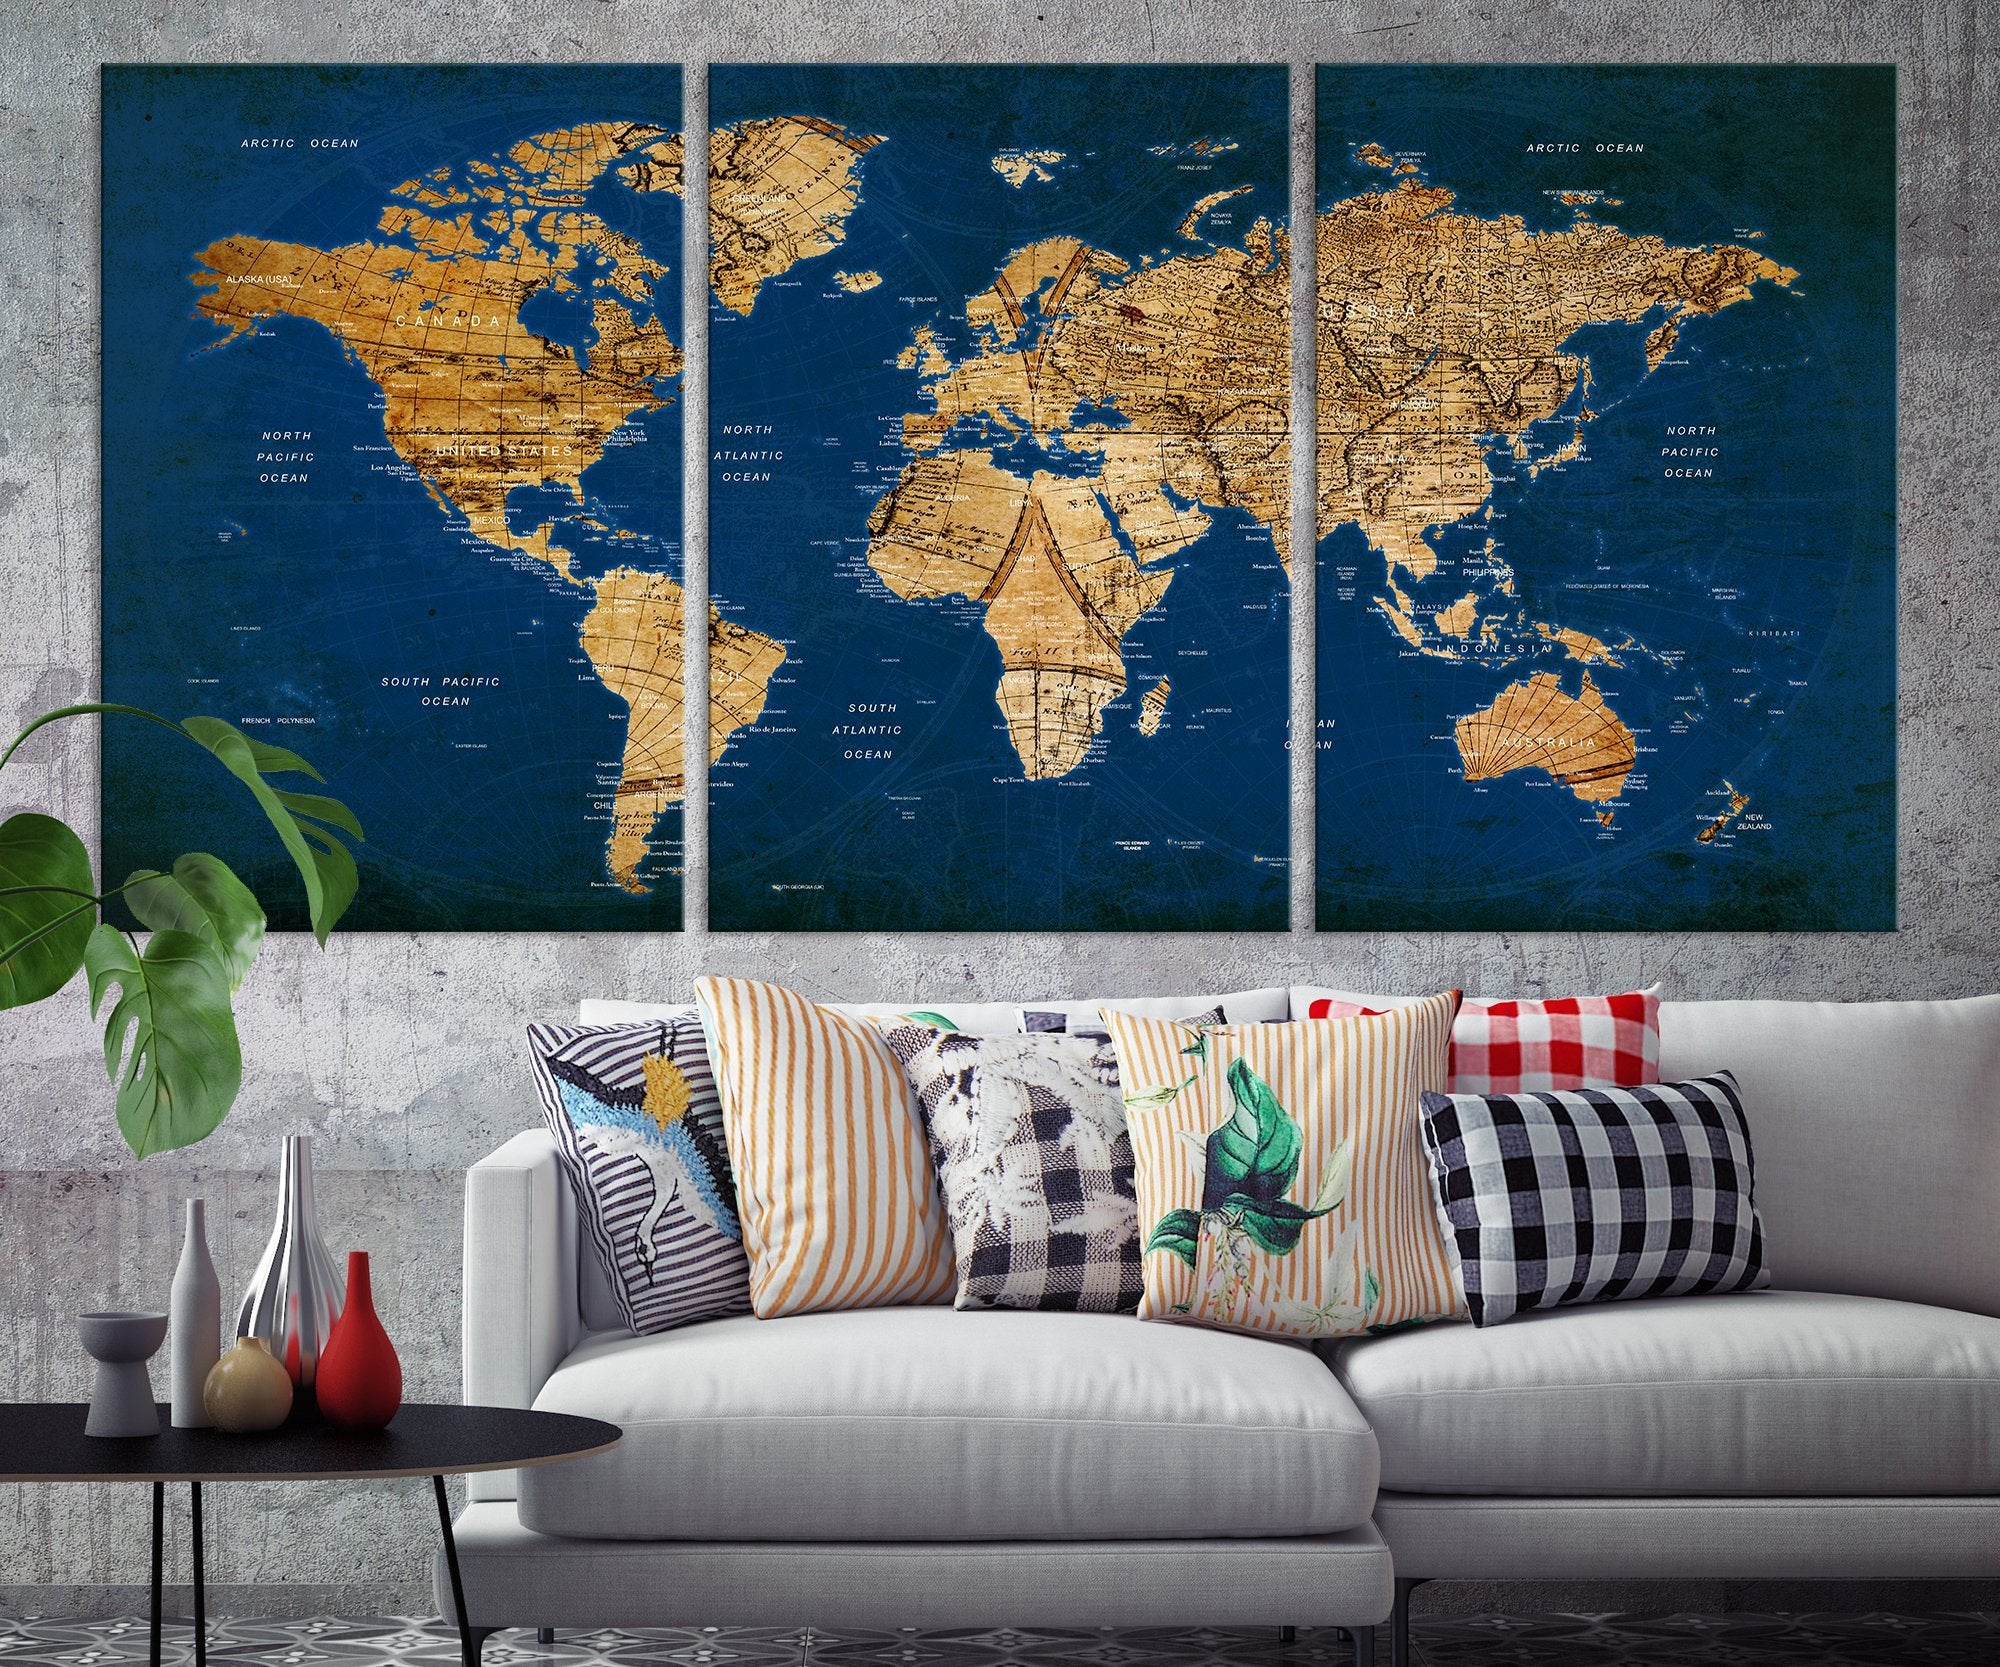 N14458 Modern Large Gold And Navy Blue Wall Art World Map Map Push Extra Large Wall Art Canvas Print,Simple South Indian Baby Shower Decorations